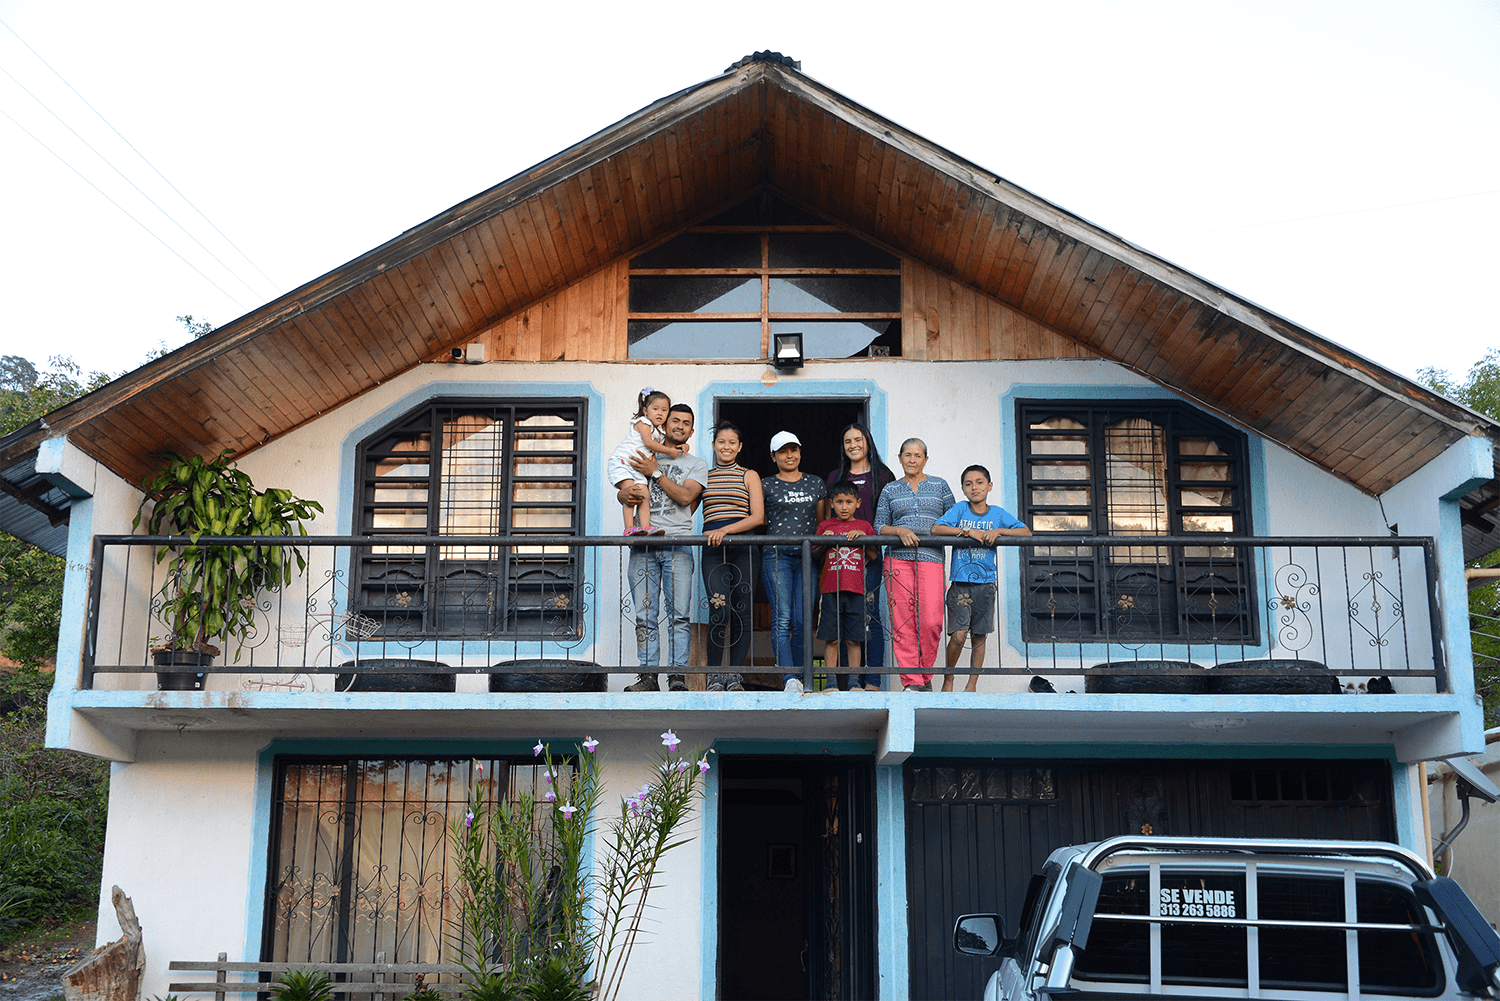 colombian family in front of their house